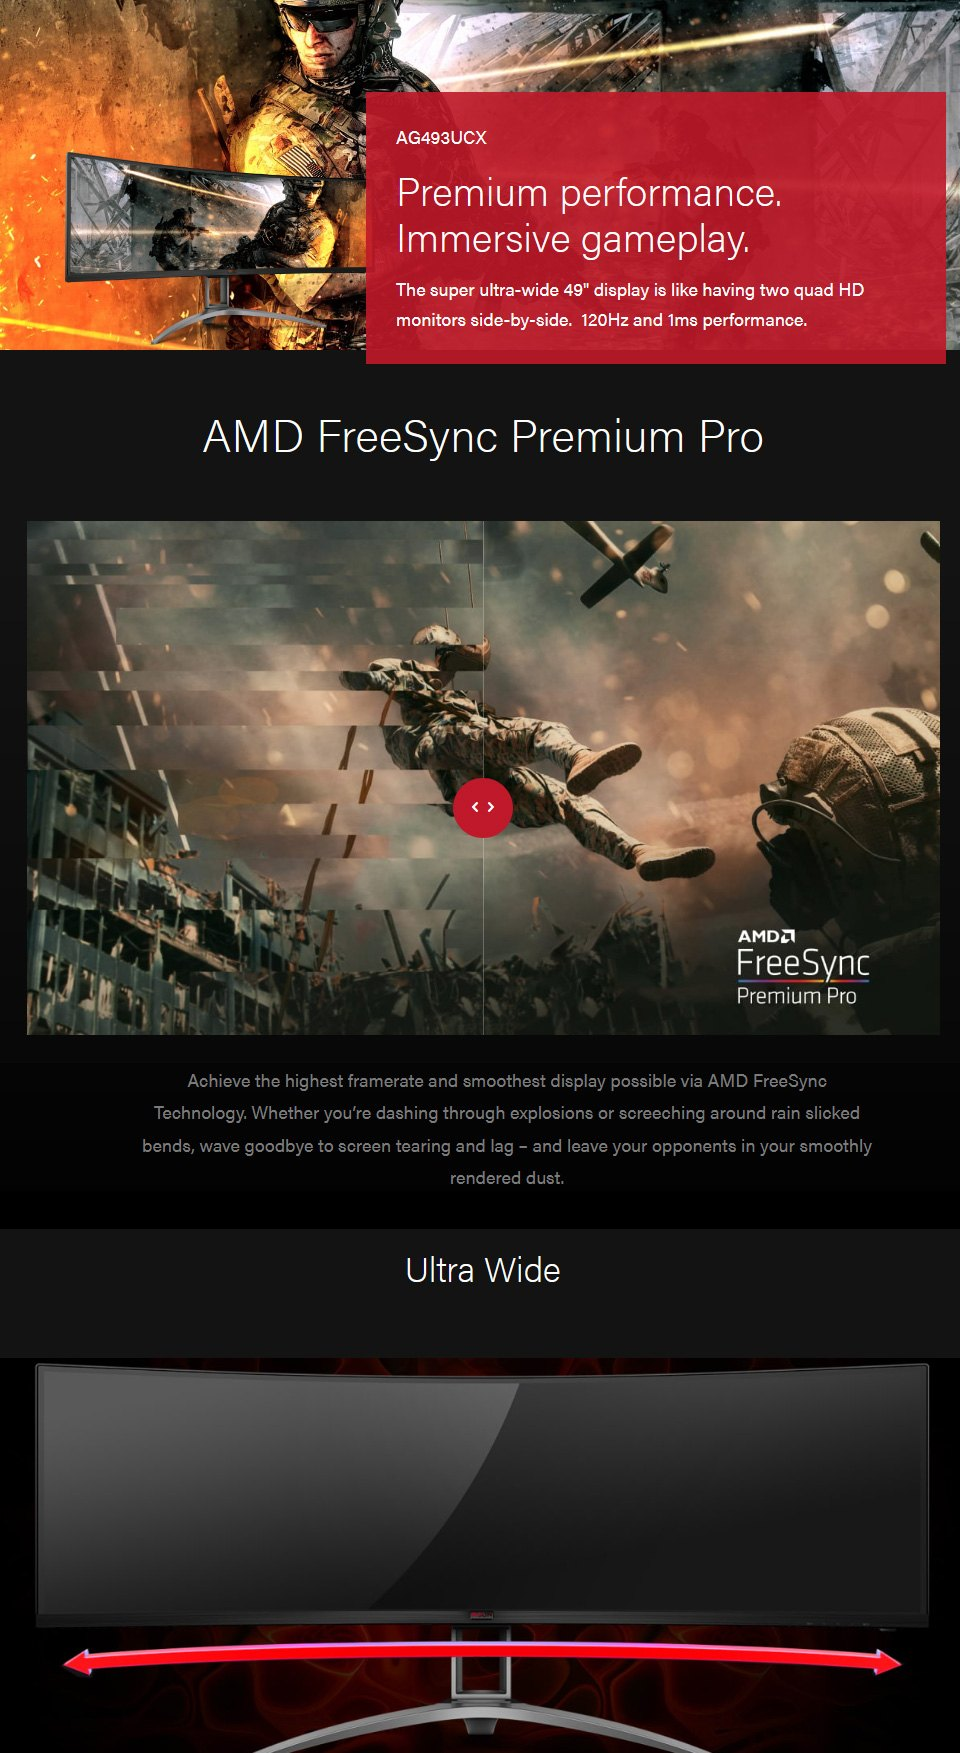 AOC AG493UCX UWUHD 120Hz FreeSync HDR 49in Monitor features